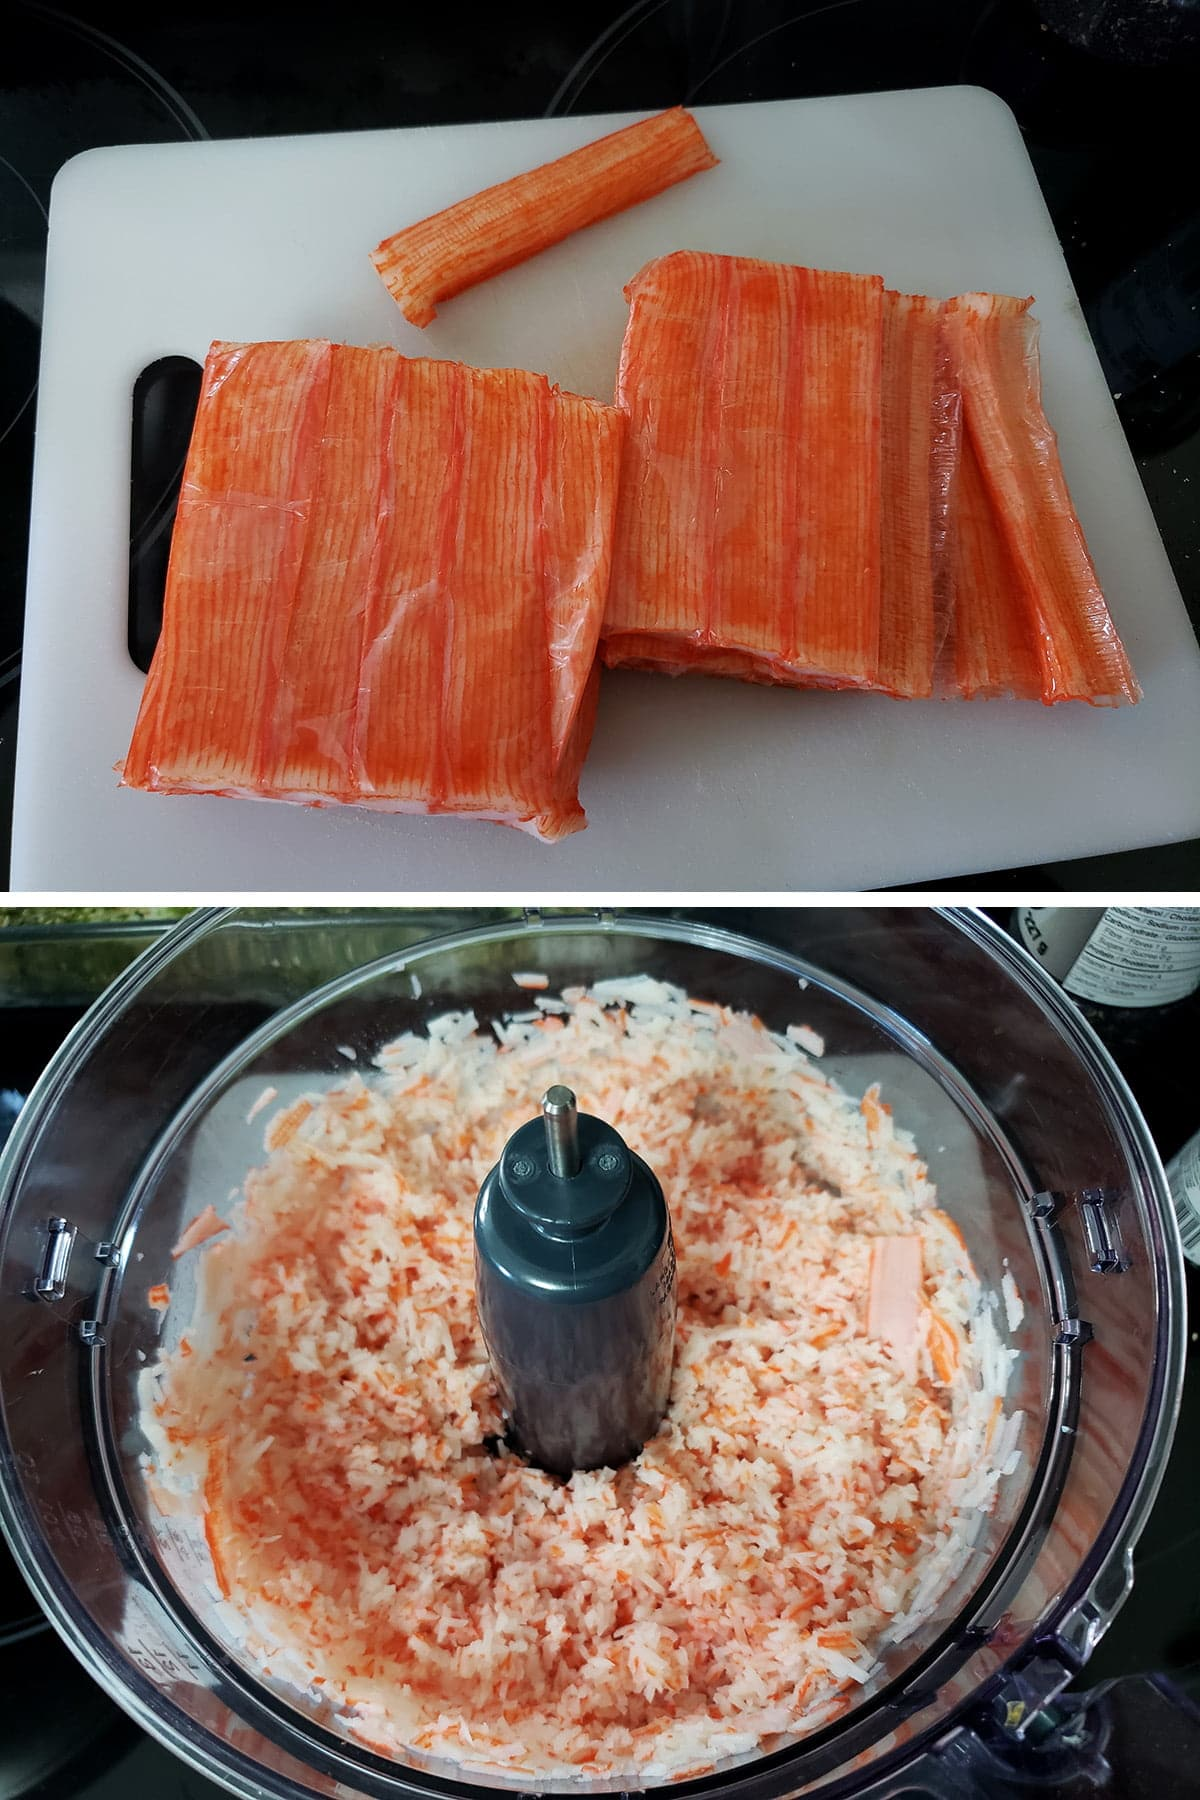 A two part compilation image showing imitation crab sticks on a cutting board, and the chopped up imitation crab in the bowl of a food processor.